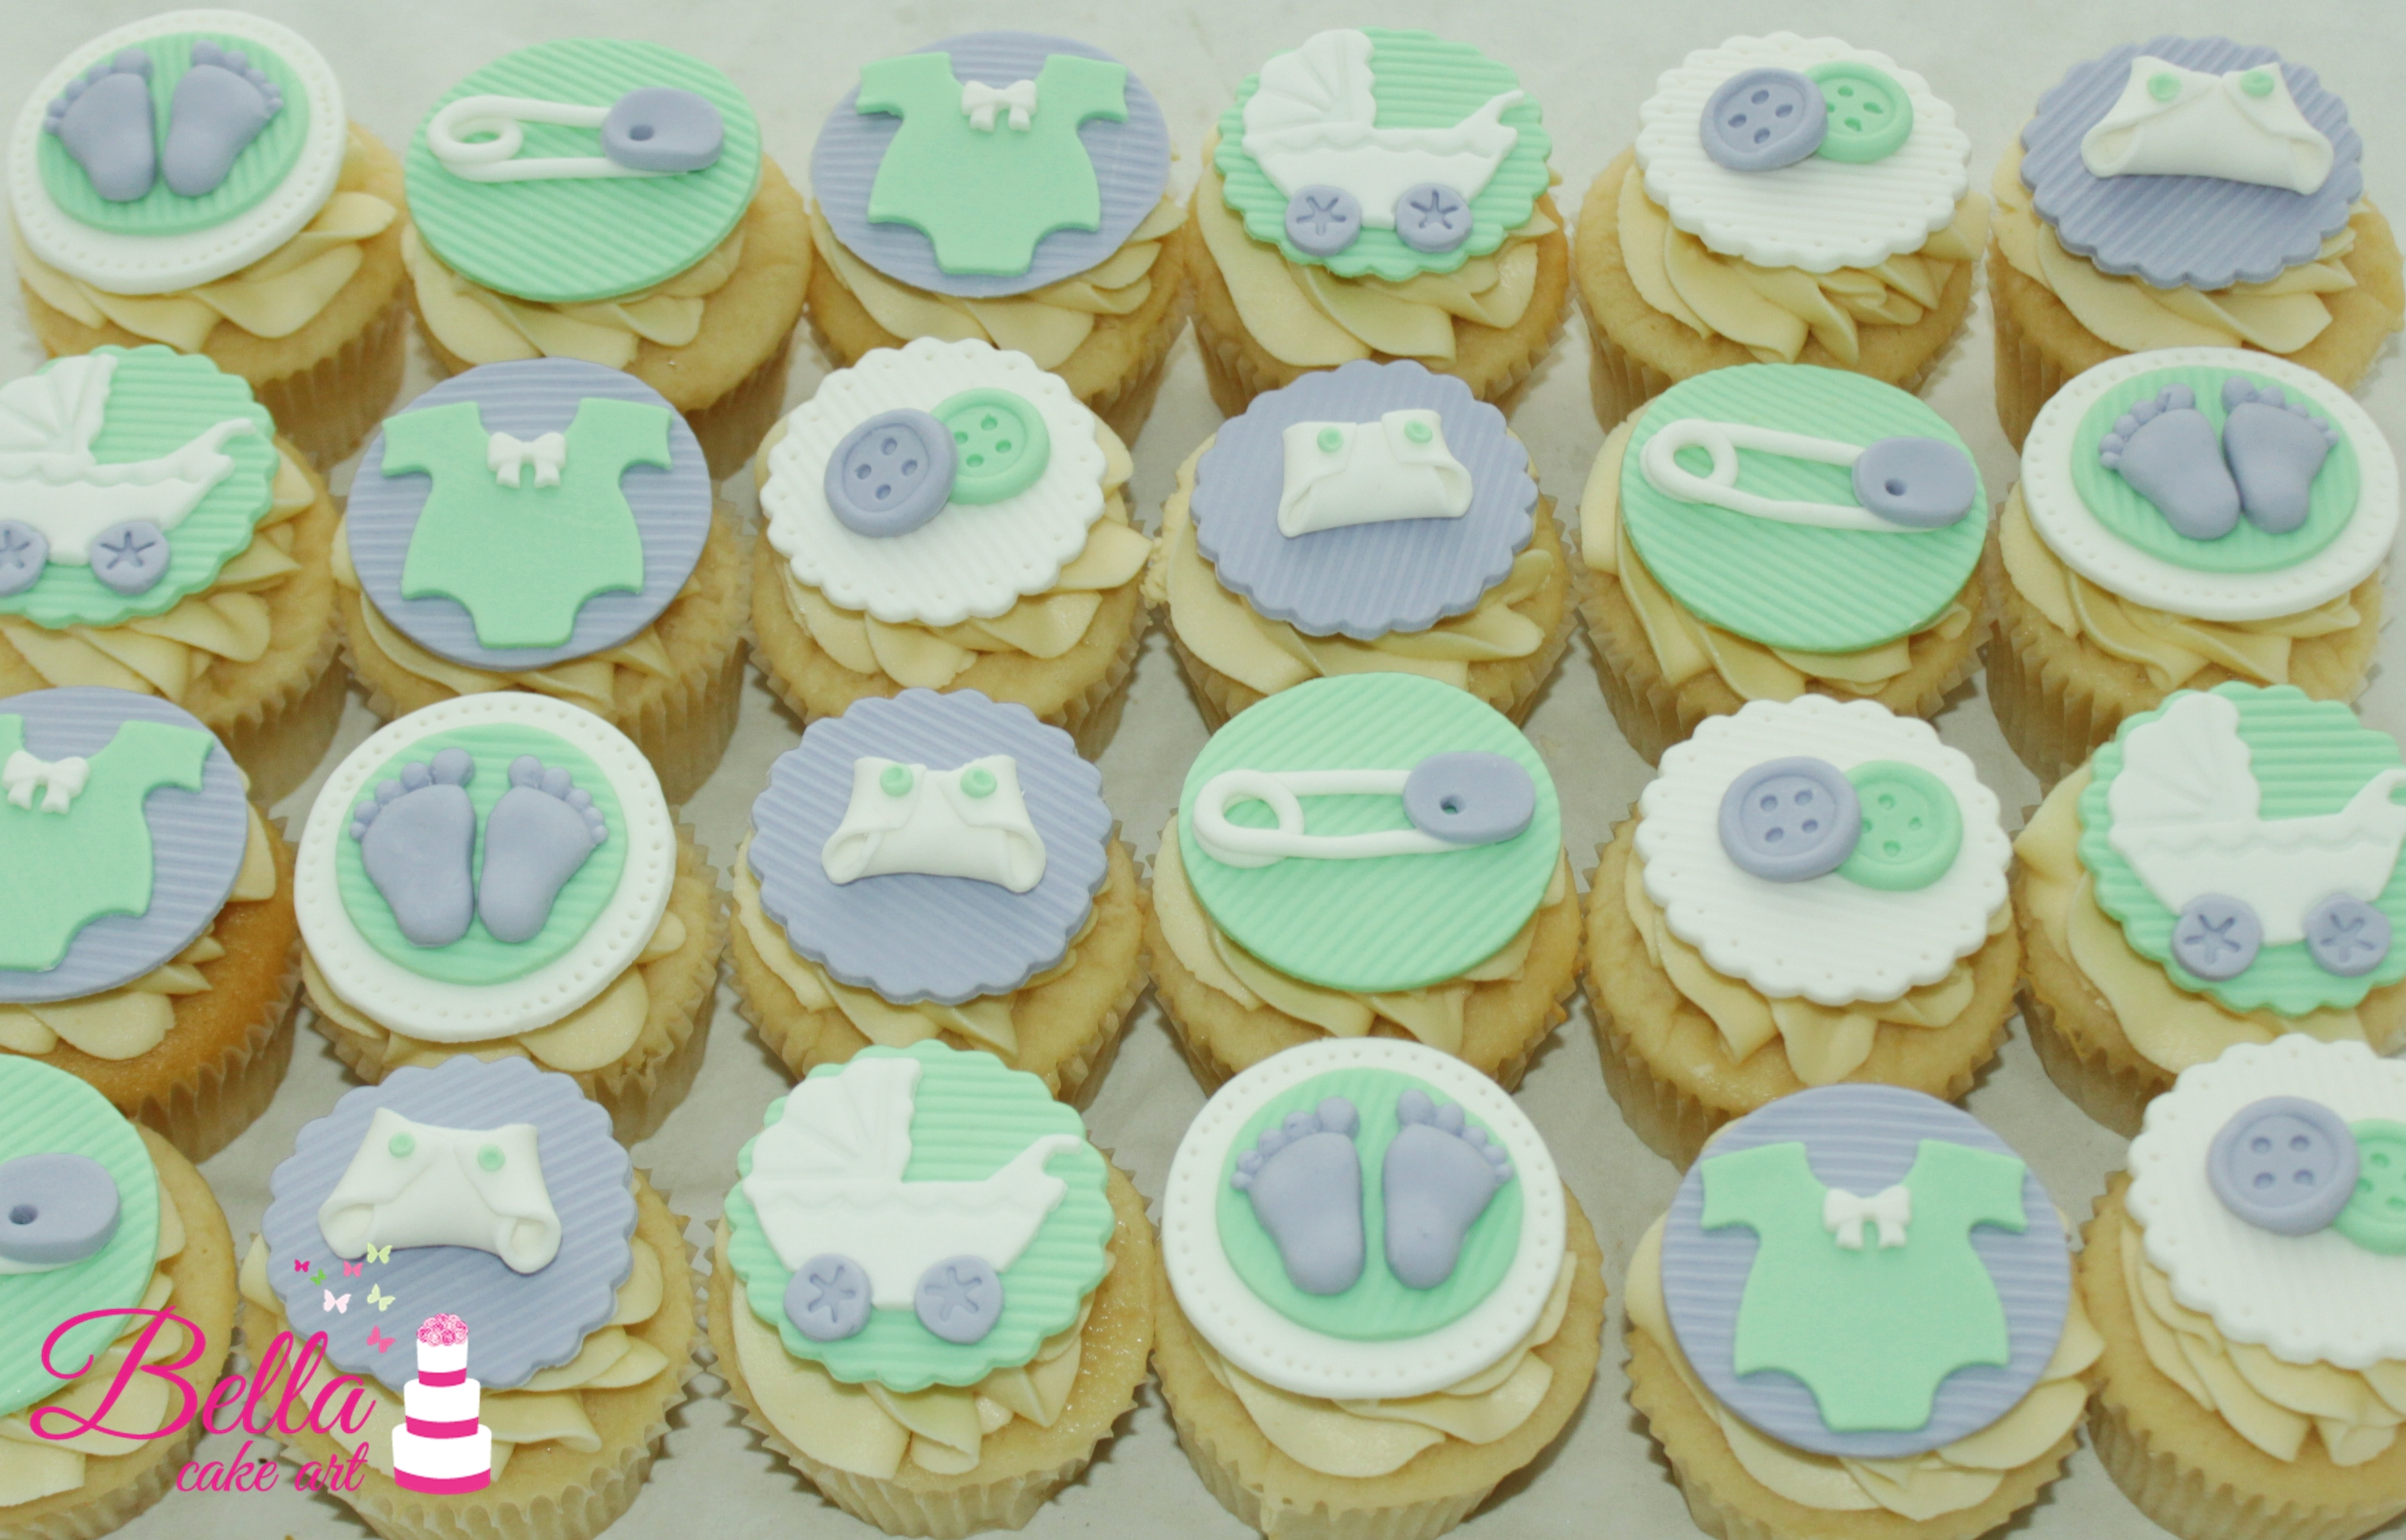 Lovely Baby Shower Cup Cakes - Baby Shower Ideas regarding Baby Shower Cupcakes